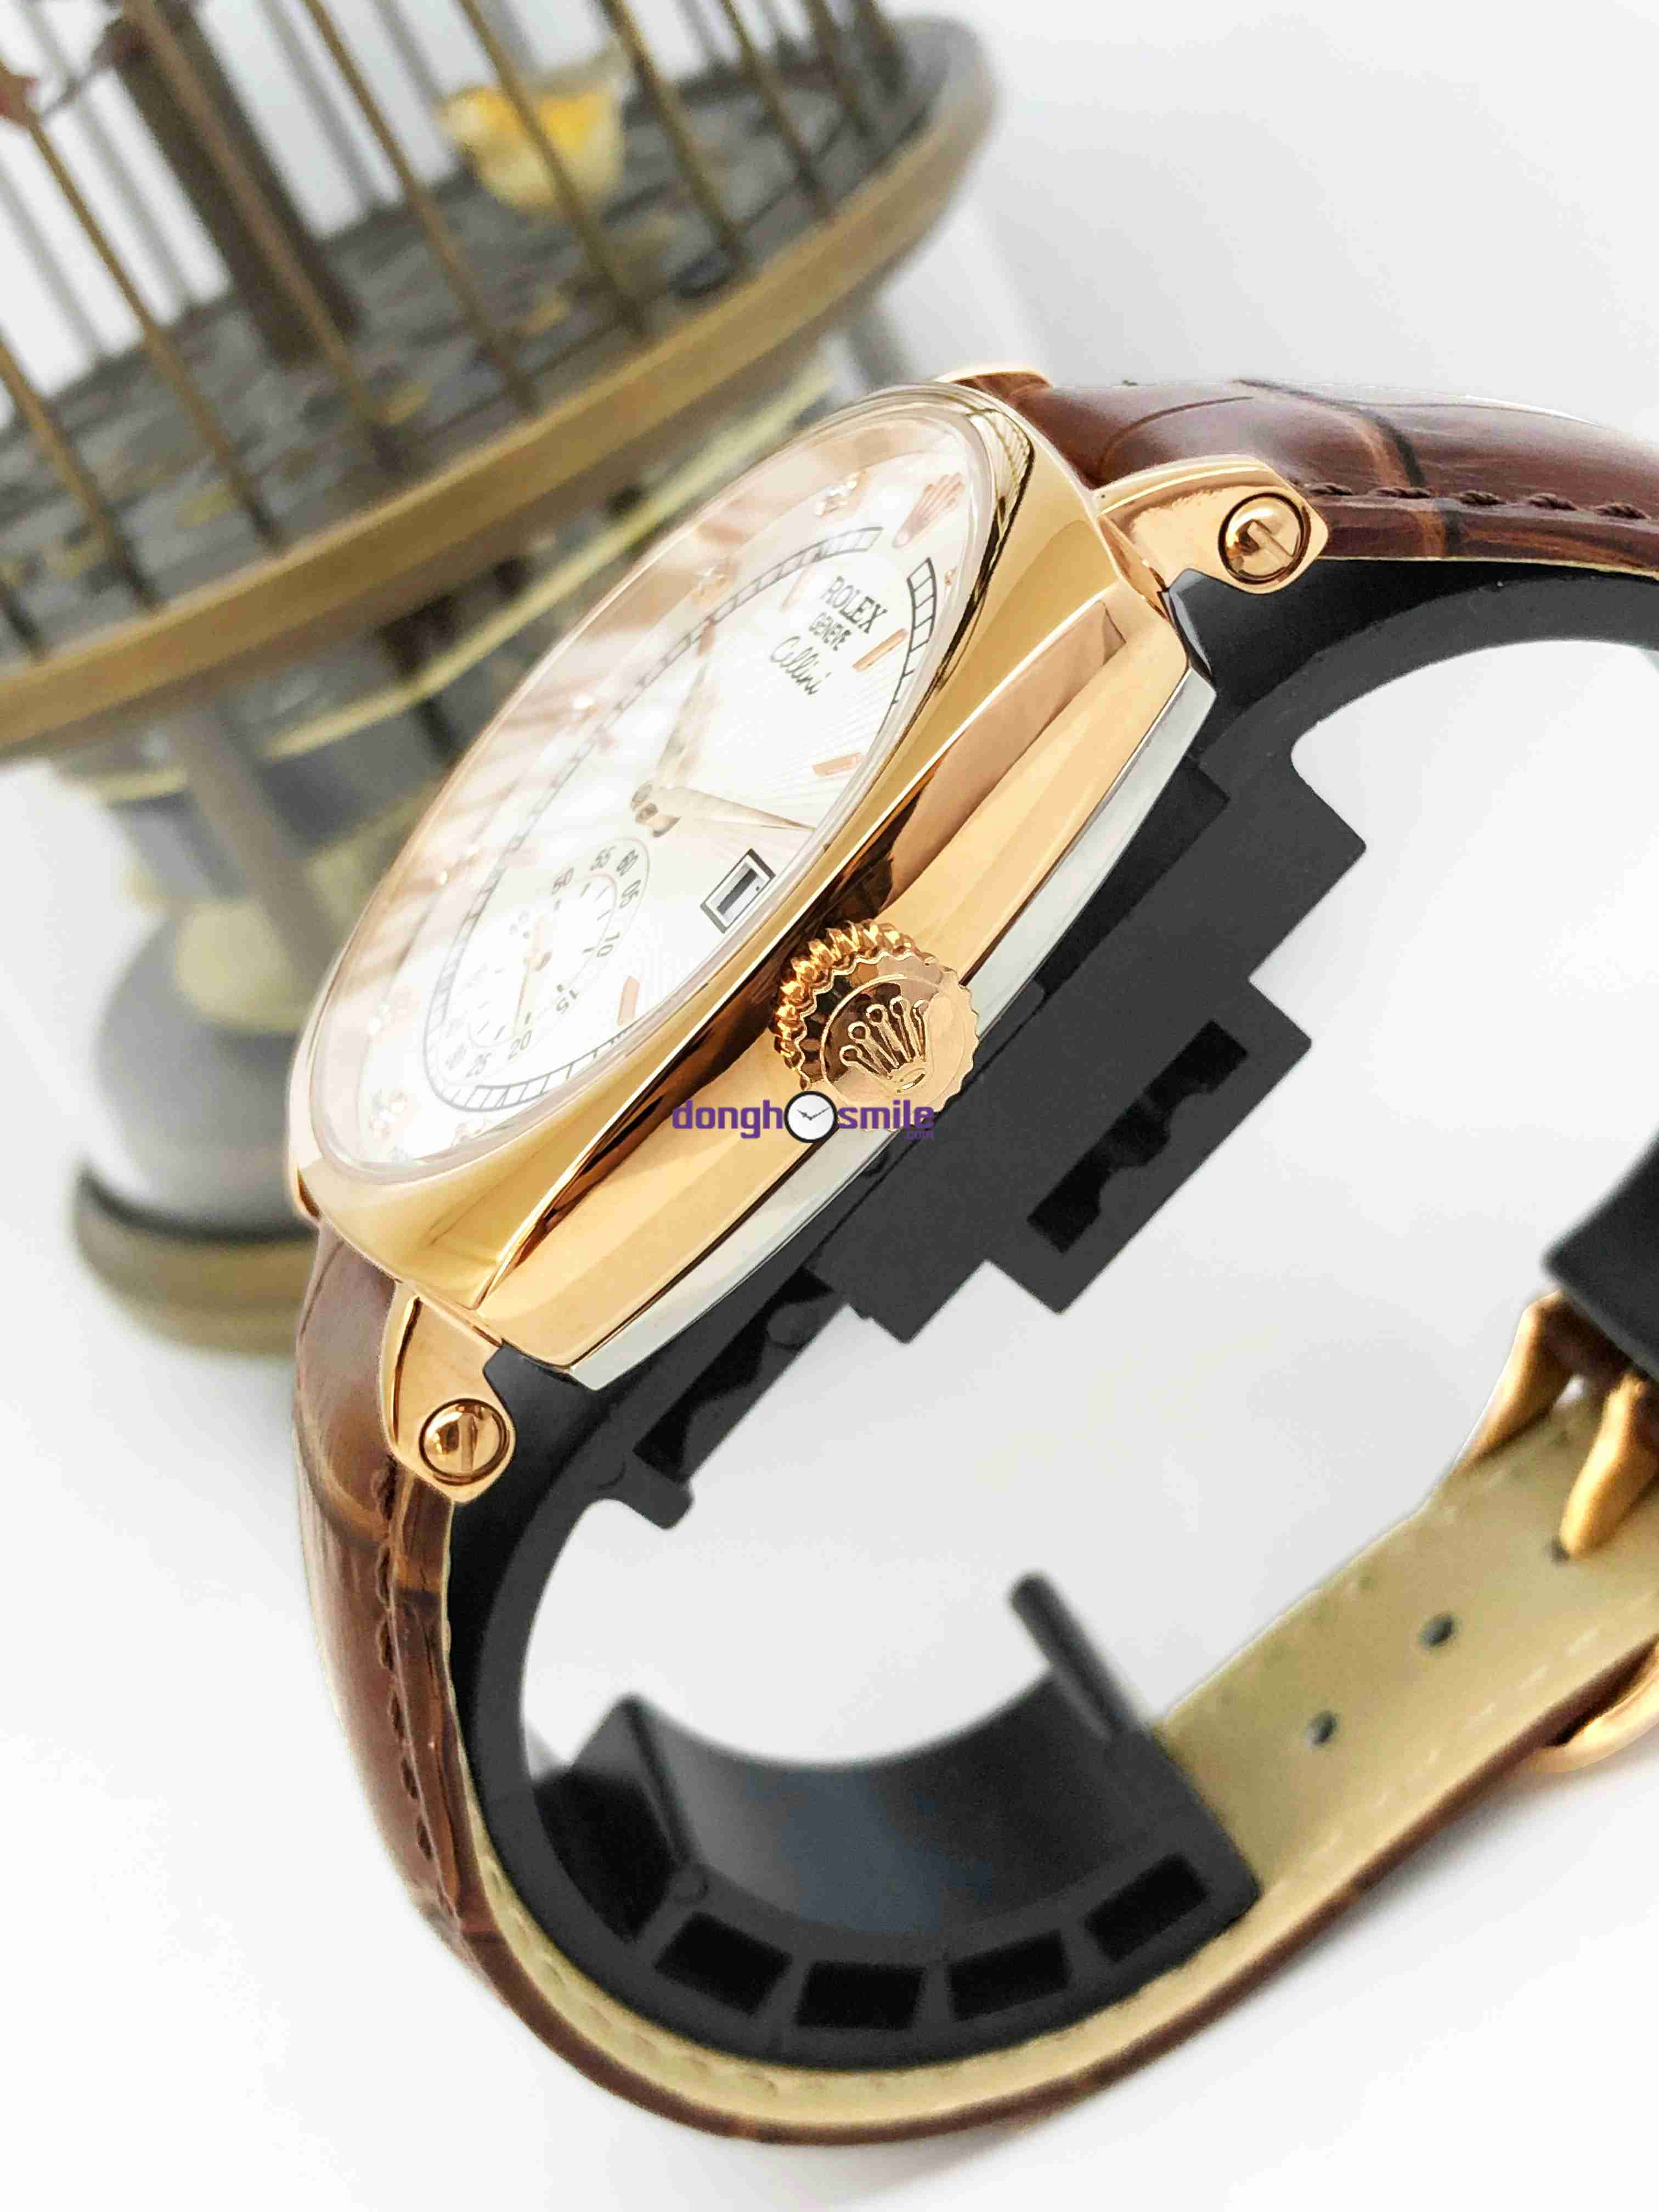 dong-ho-rolex-cellini-nam-may-tu-dong-a-rl05-05